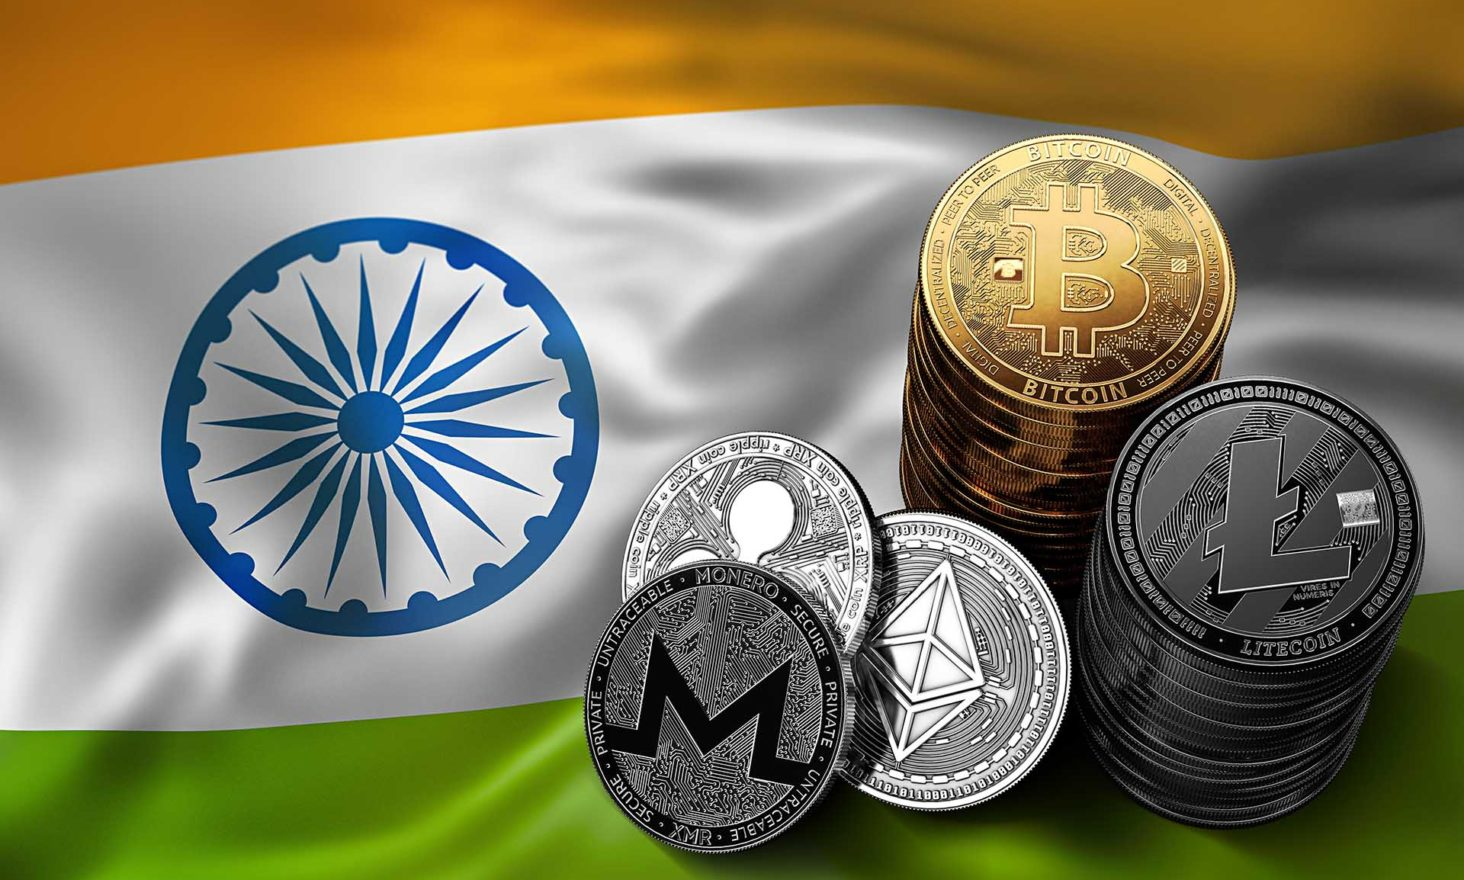 Crowdfire Founder Nischal Shetty to Launch India's WazirX Bitcoin Exchange